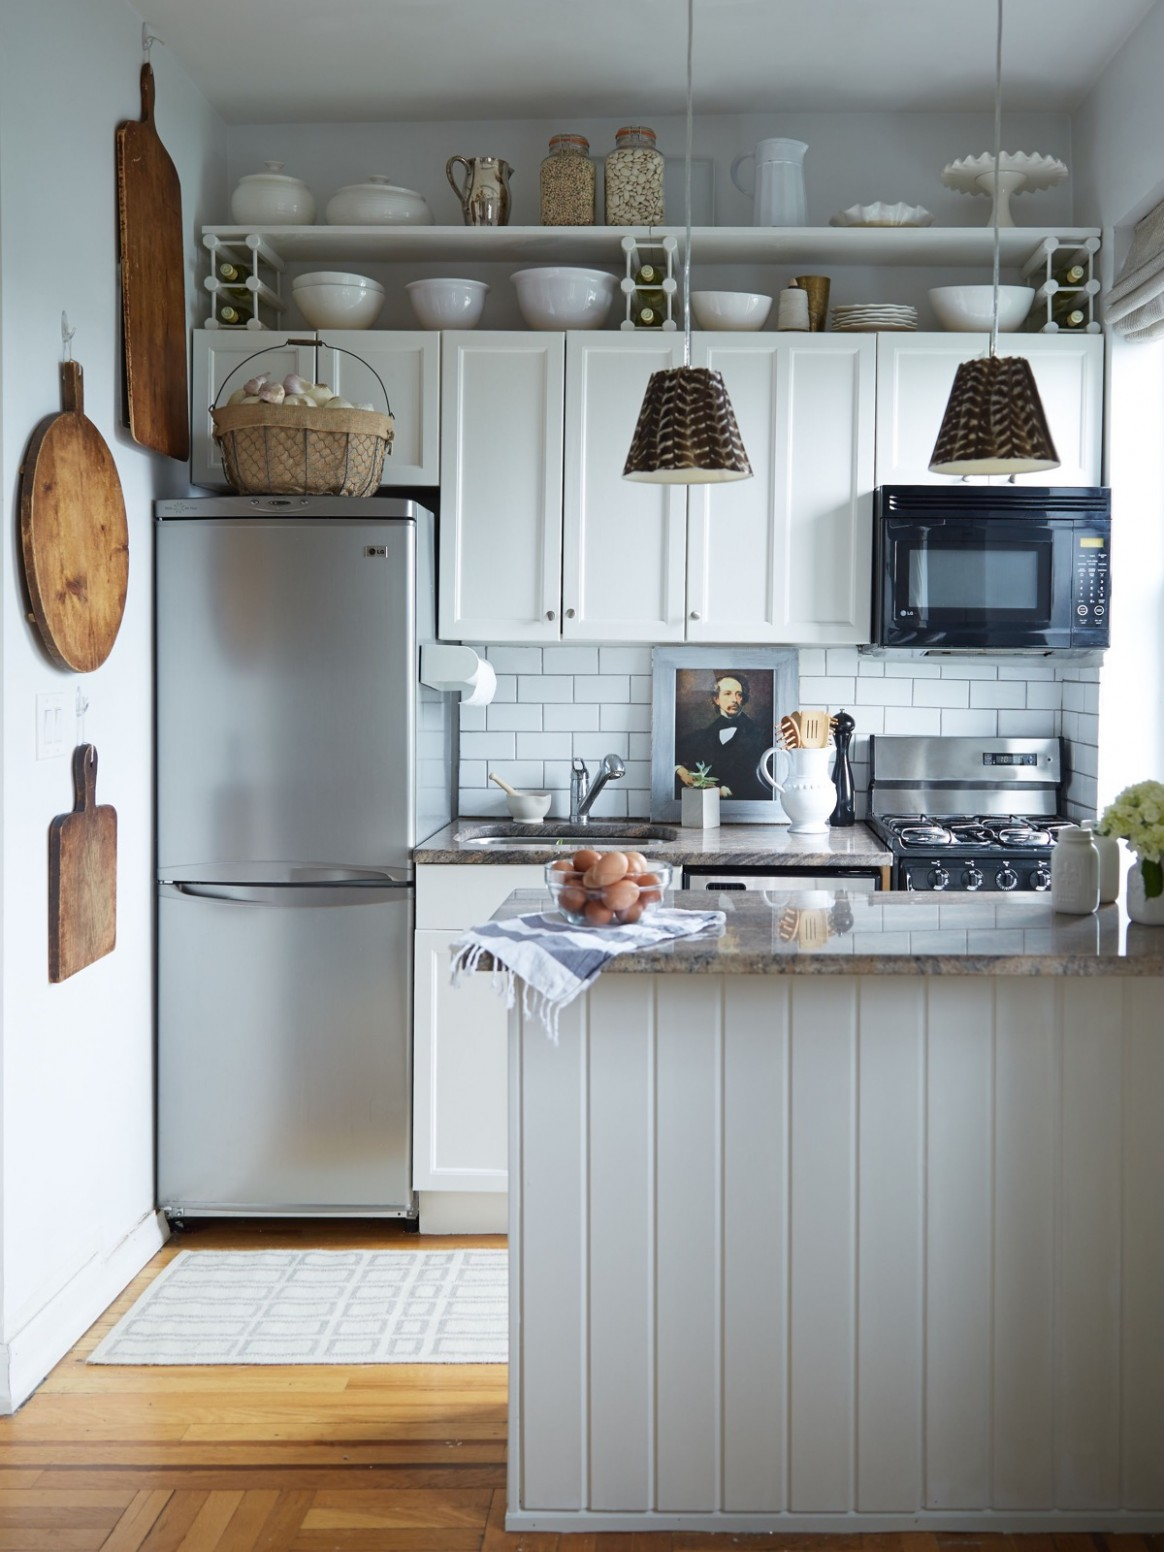 12 Splendid Small Kitchens And Ideas You Can Use From Them - Apartment Kitchen Design Ideas